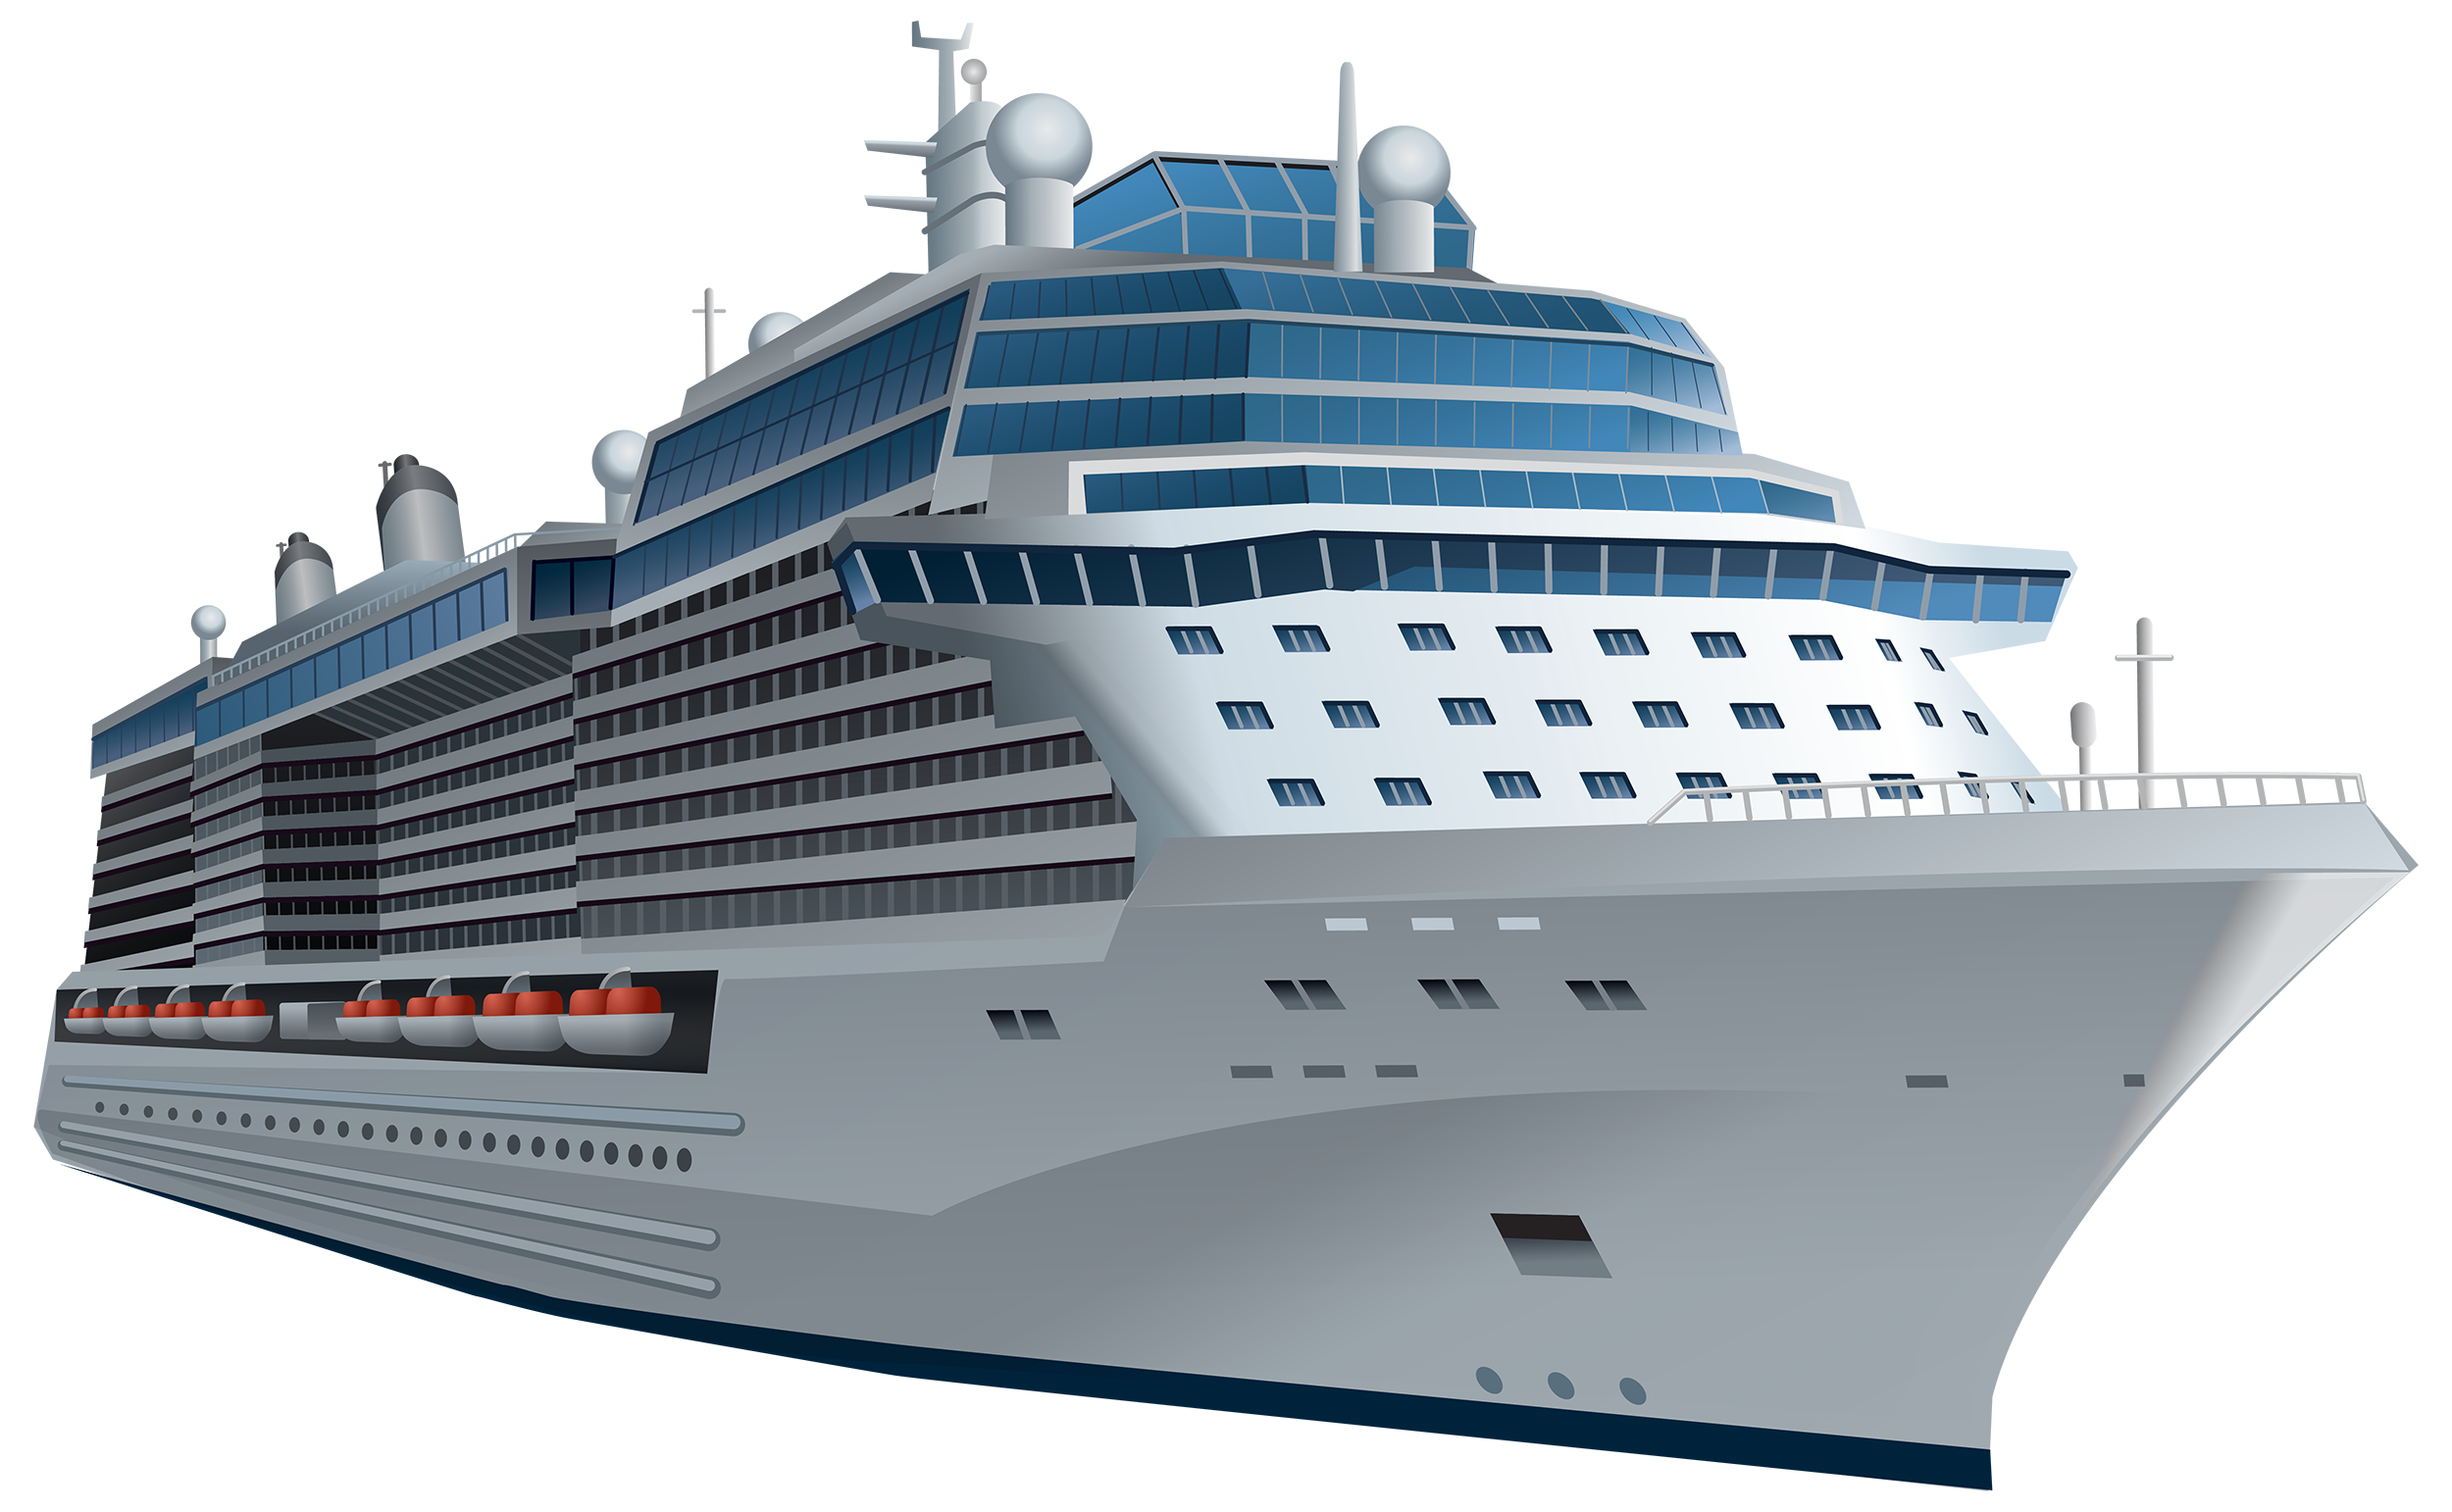 White Cruise Ship PNG Clipart-White Cruise Ship PNG Clipart-19